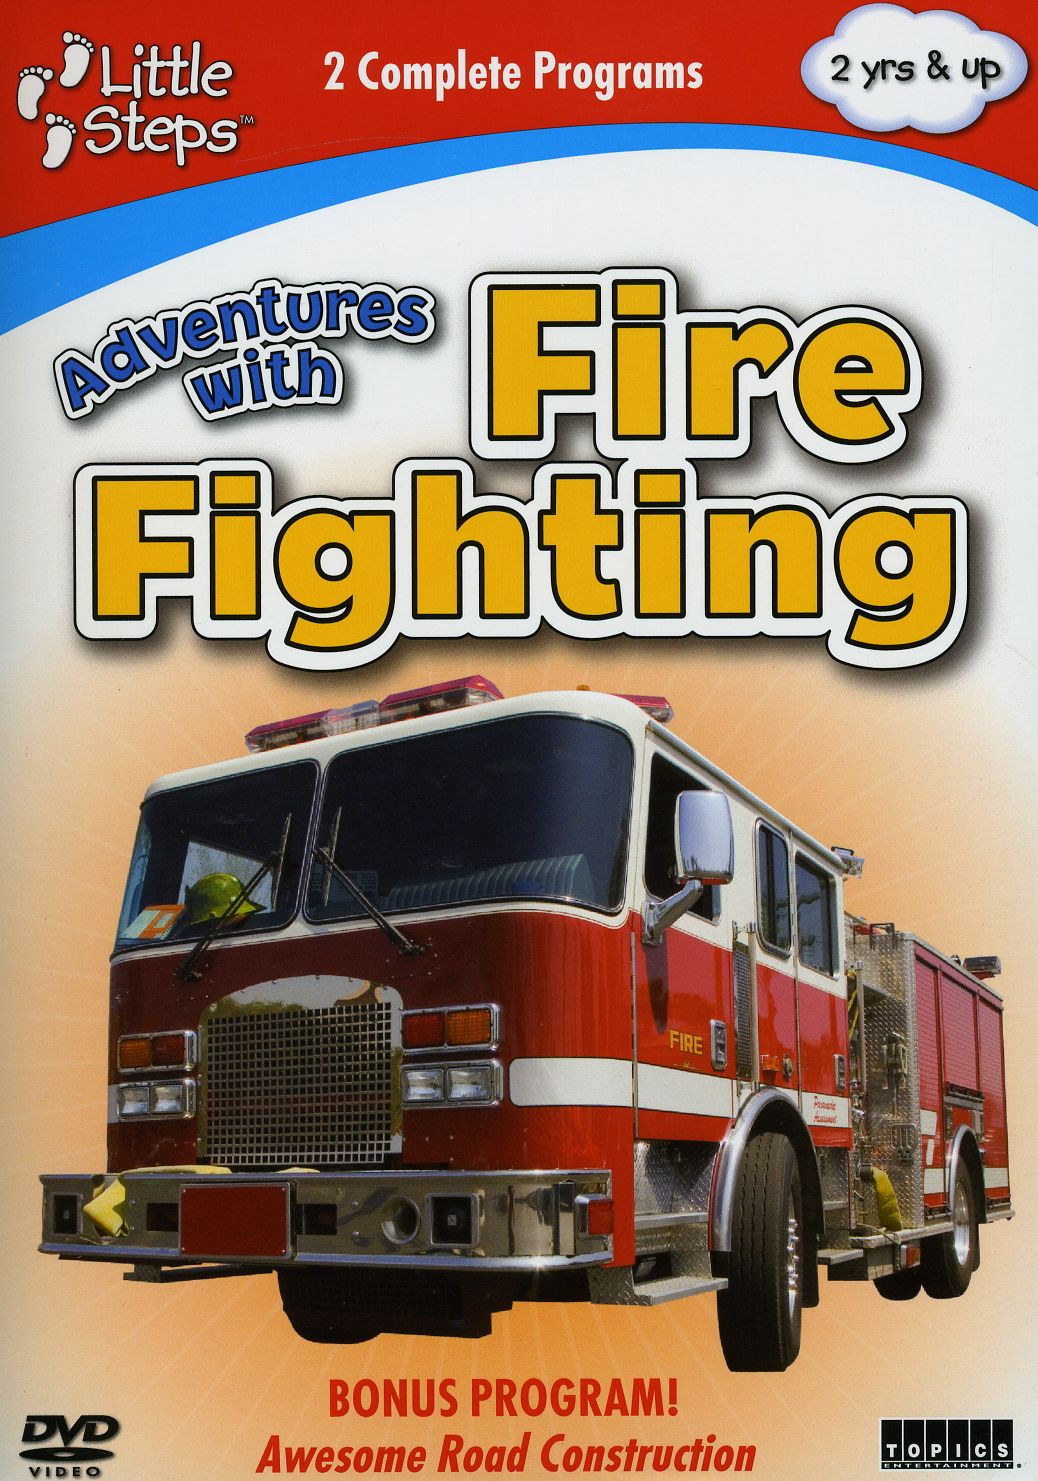 Adventures with Fire Fighters (DVD)